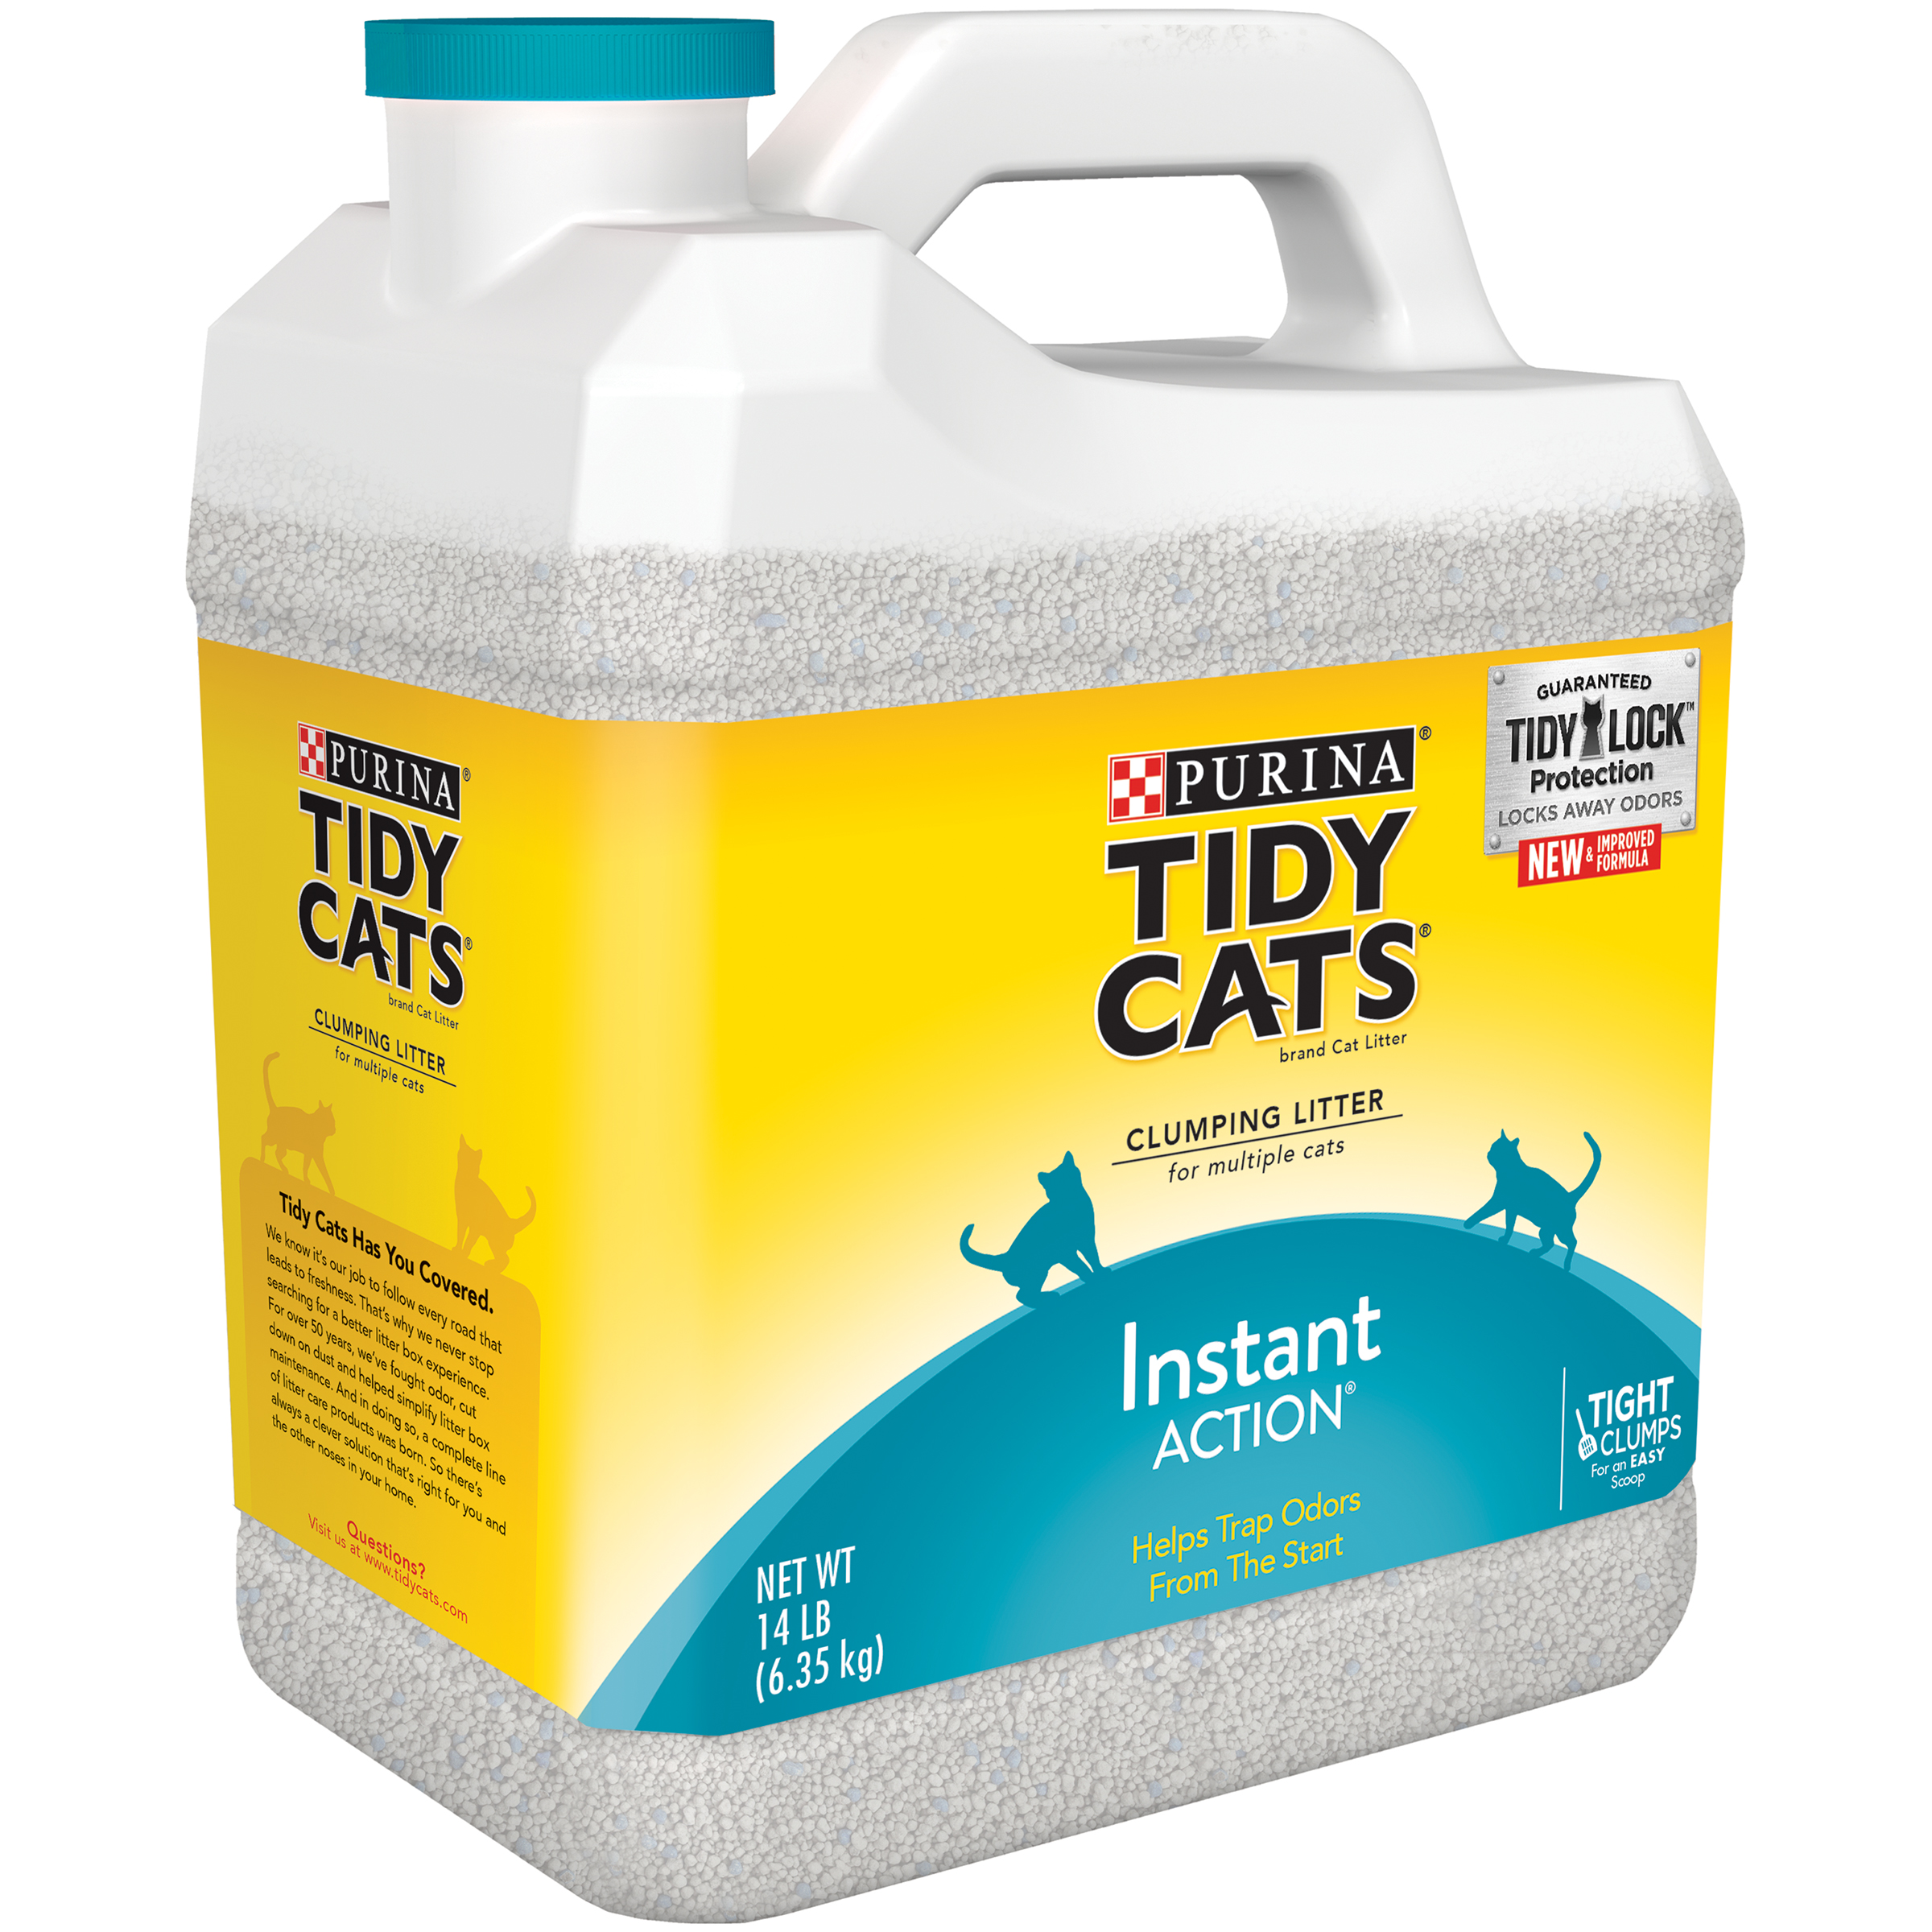 Purina Tidy Cats Clumping Litter Instant Action for Multiple Cats 14 lb. Jug